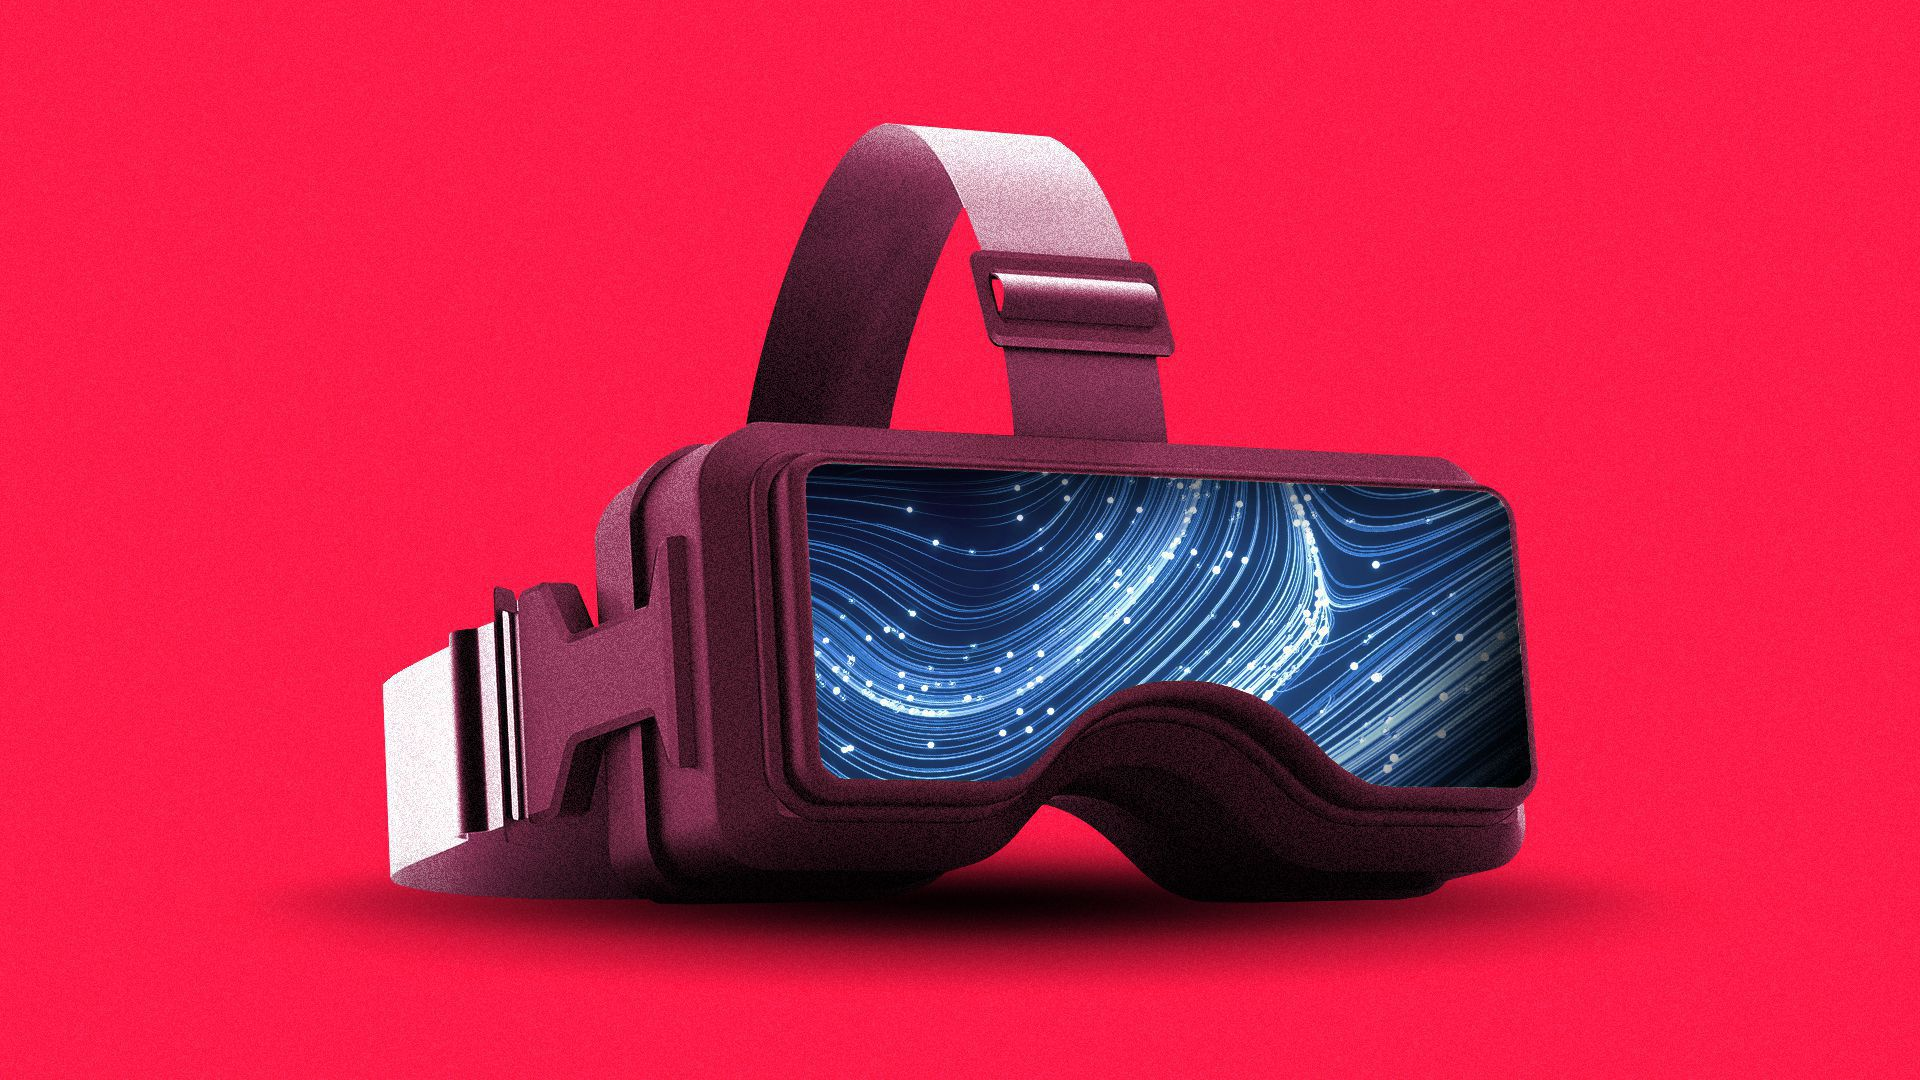 The coming age of digital reality